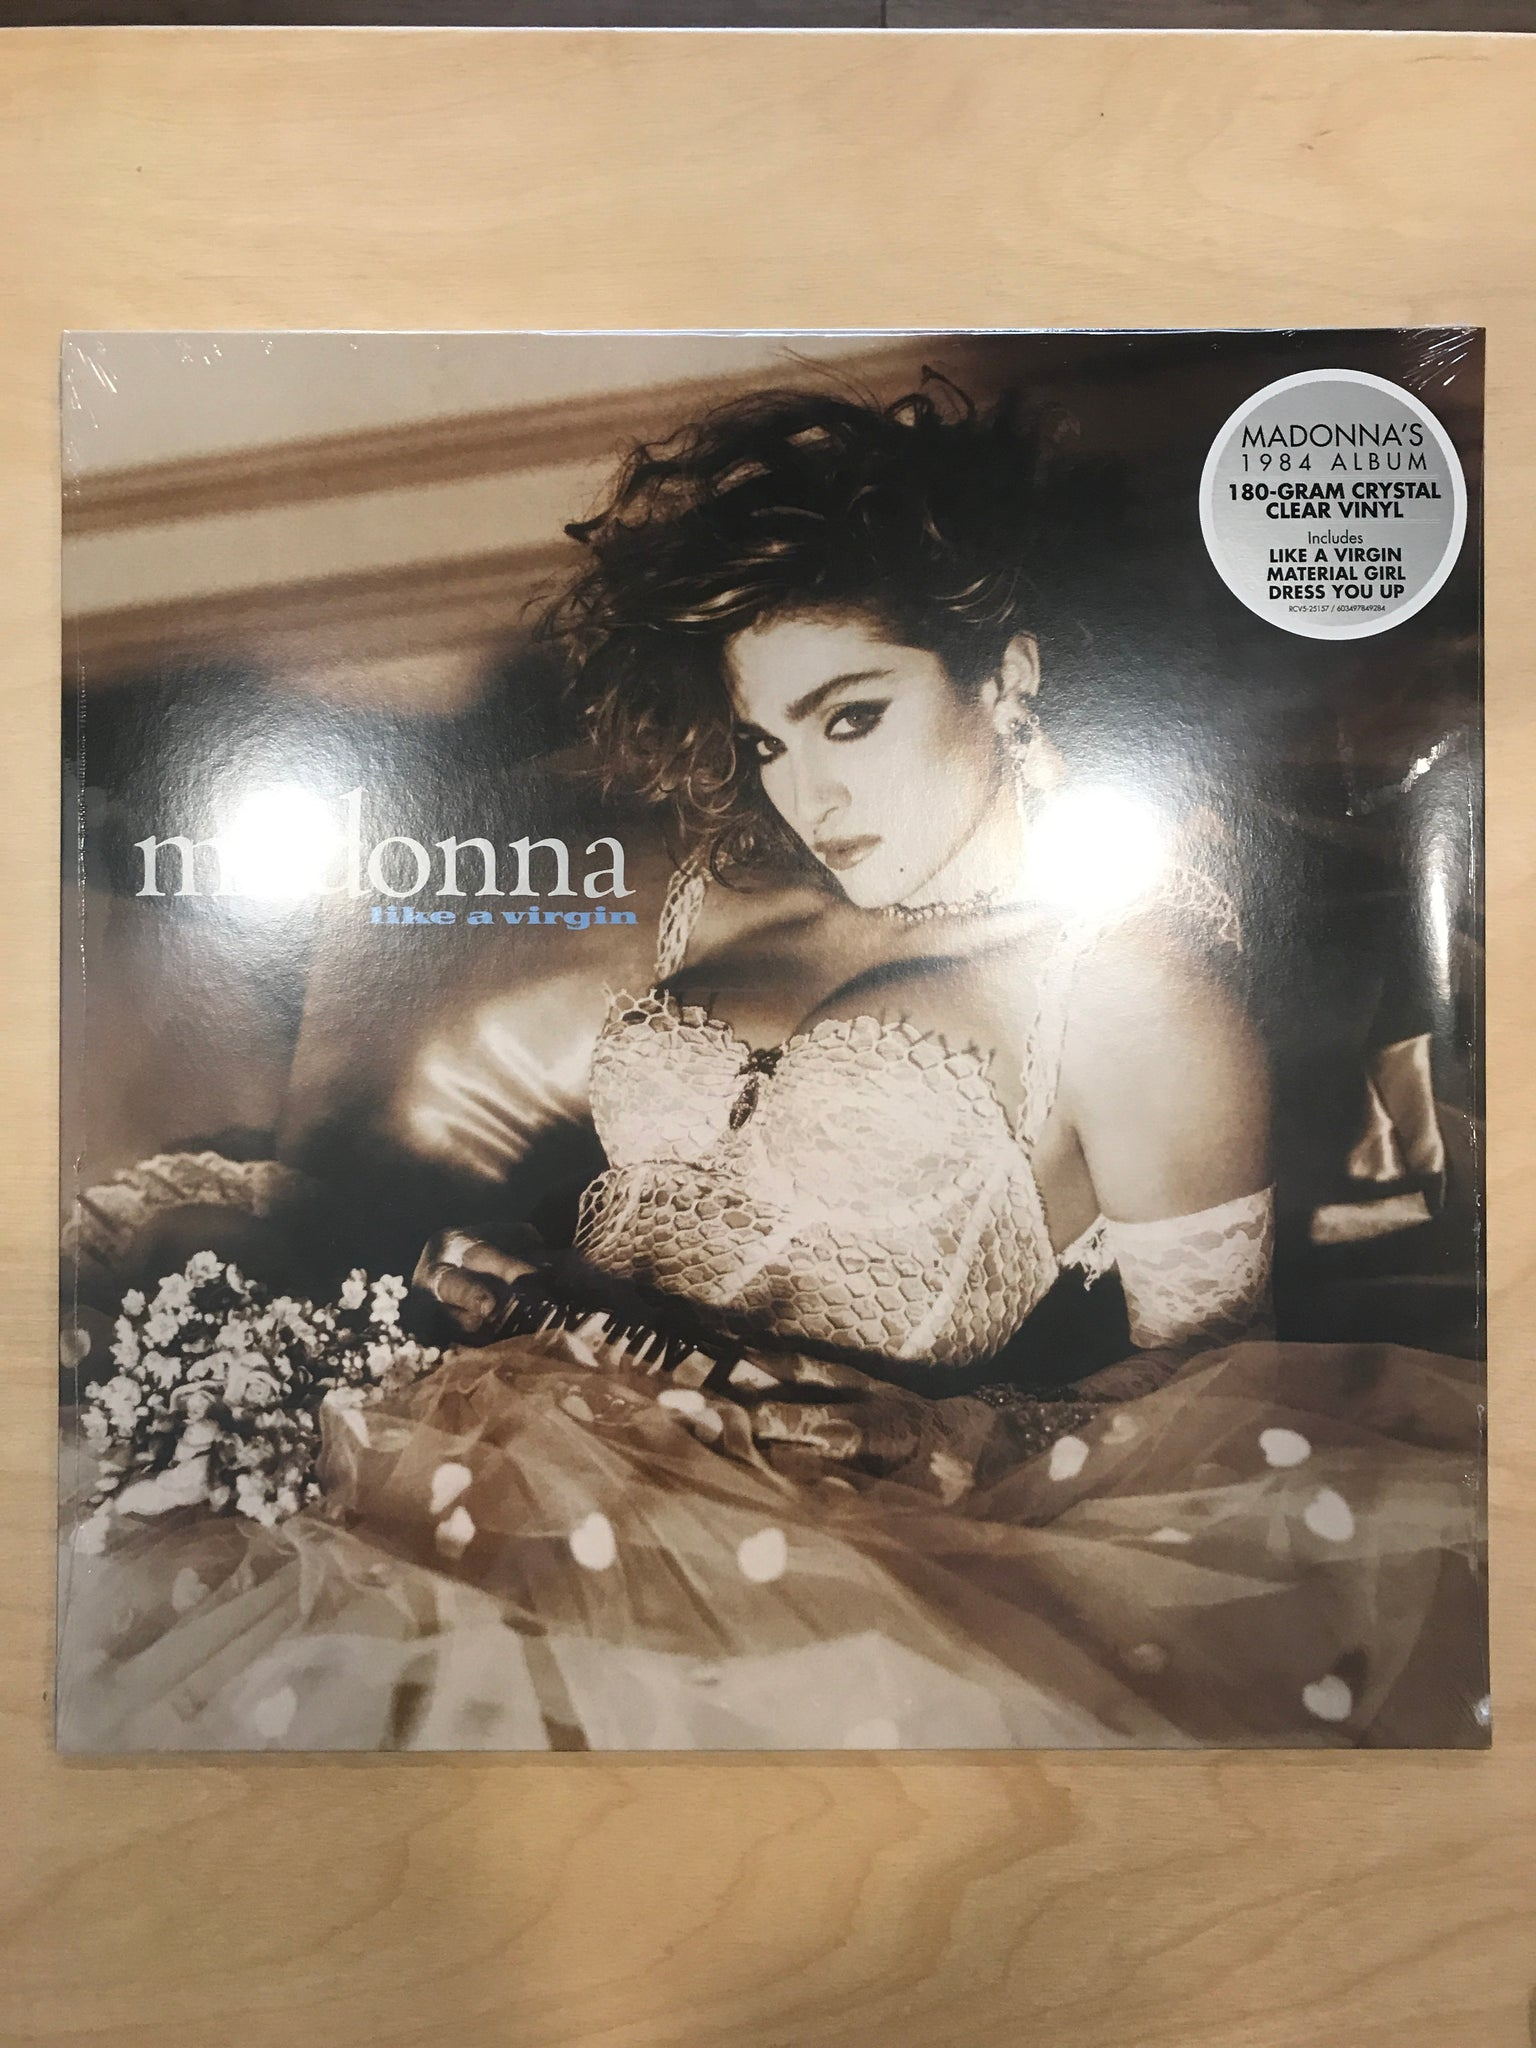 Madonna - Like a Virgin (crystal clear vinyl)